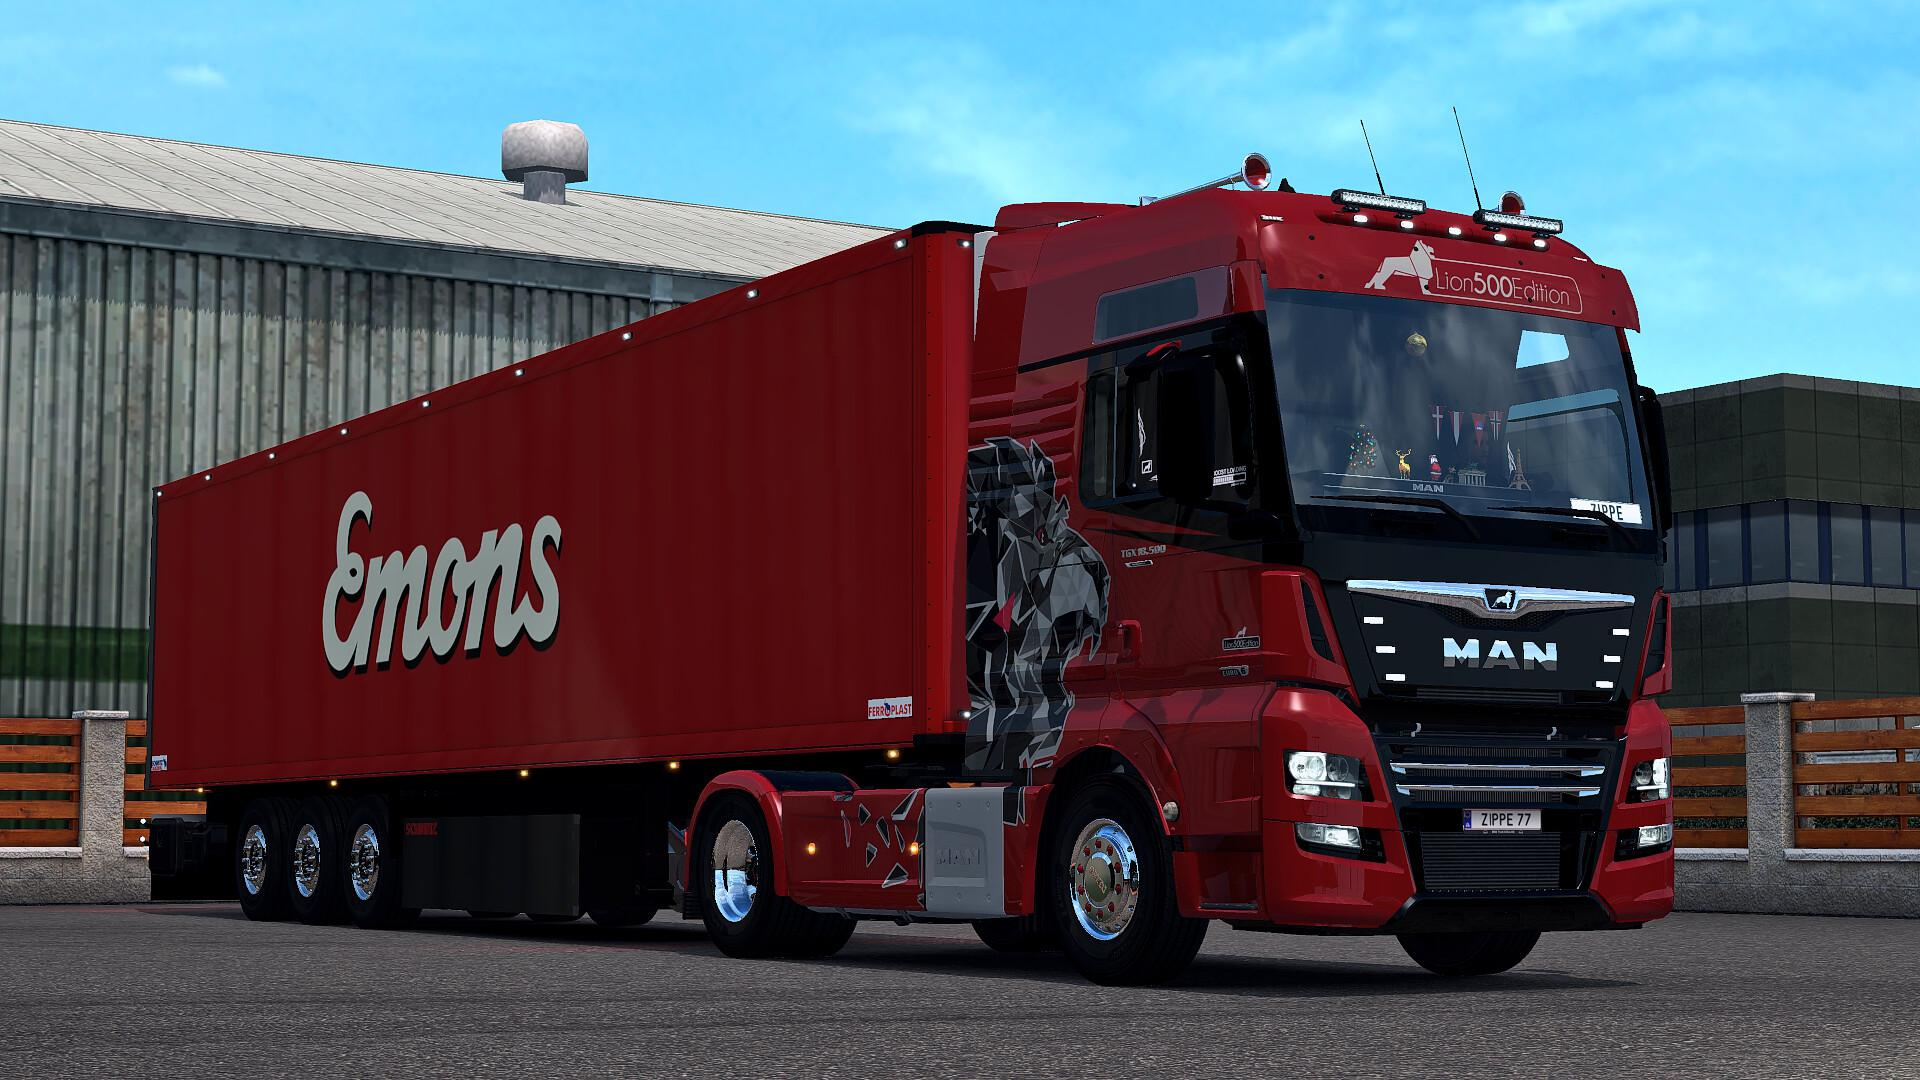 ETS2 - Save Game No DLC Support Multiplayer (1.35.x)